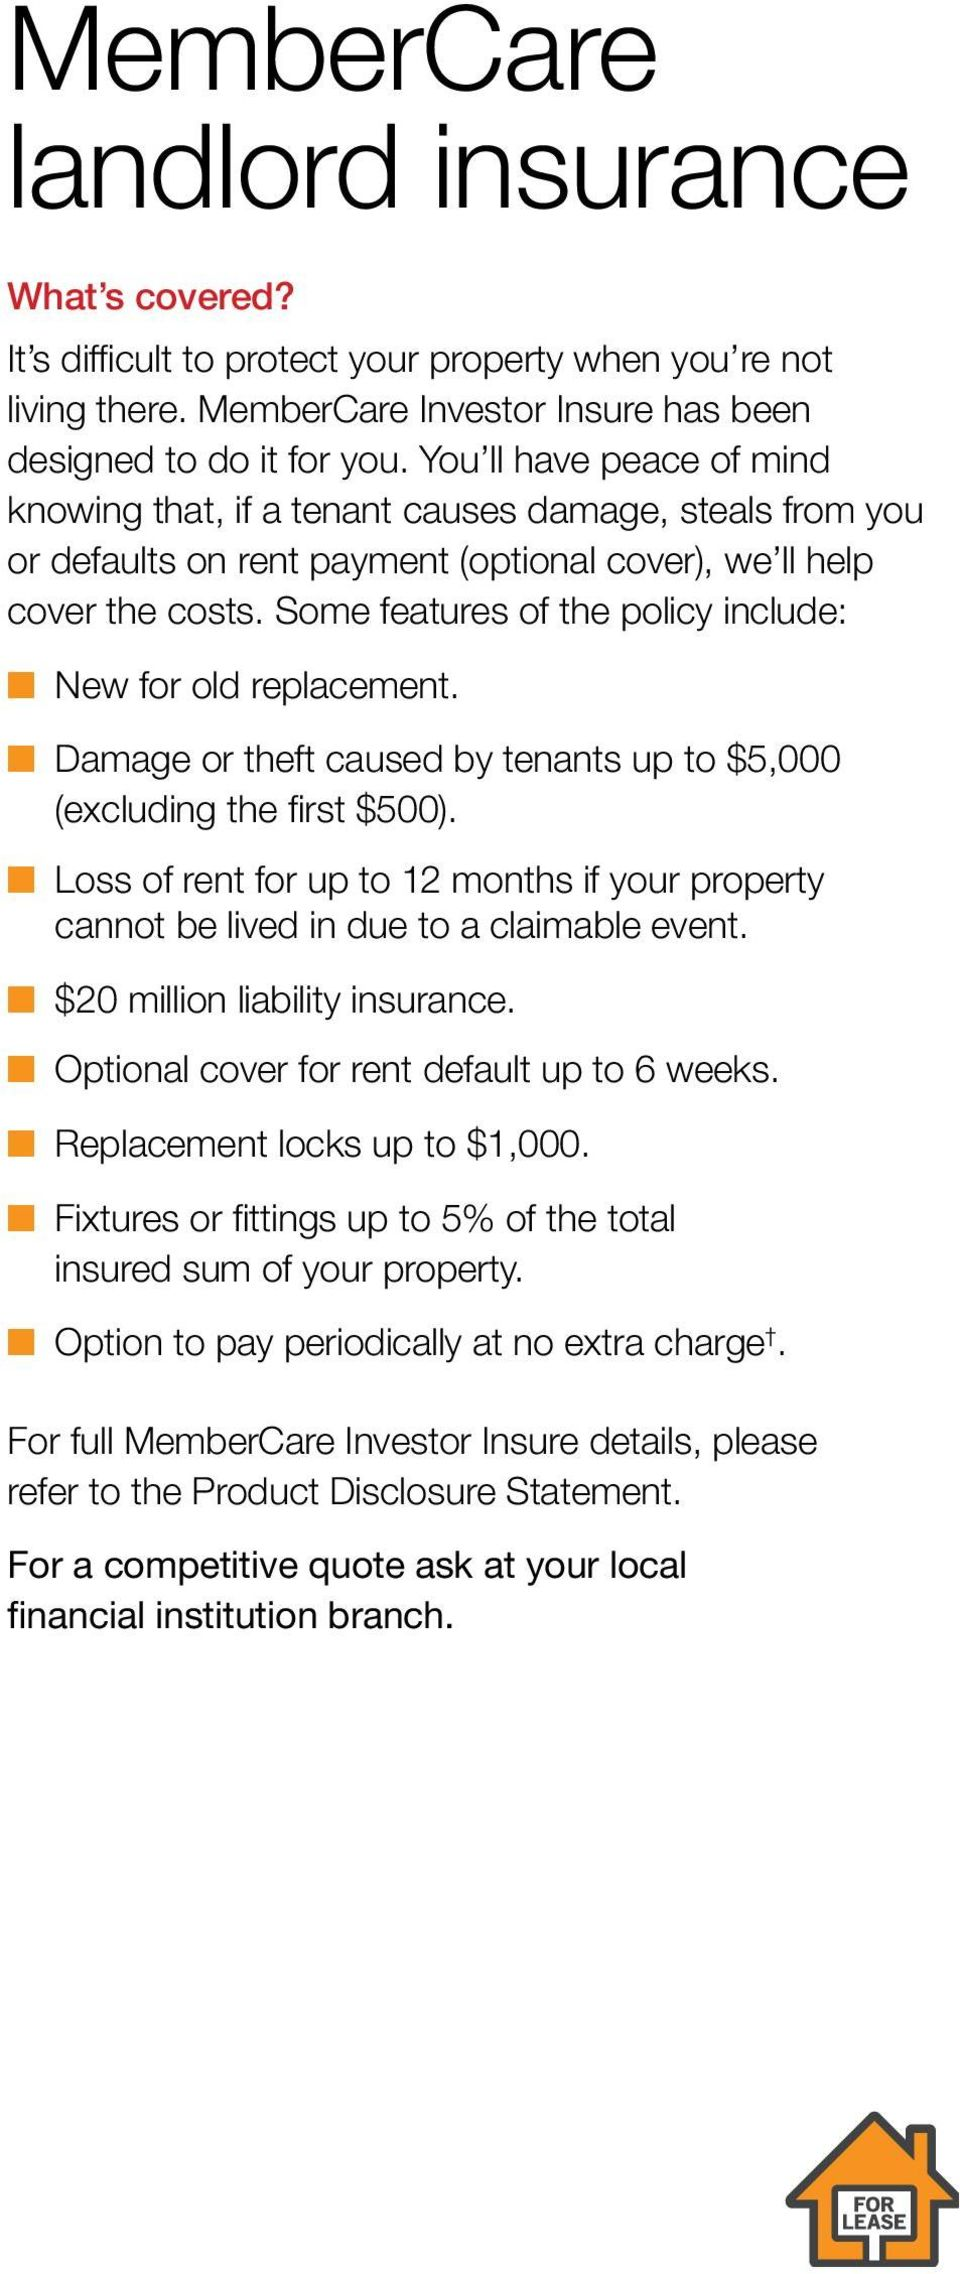 Some features of the policy include: New for old replacement. Damage or theft caused by tenants up to $5,000 (excluding the first $500).